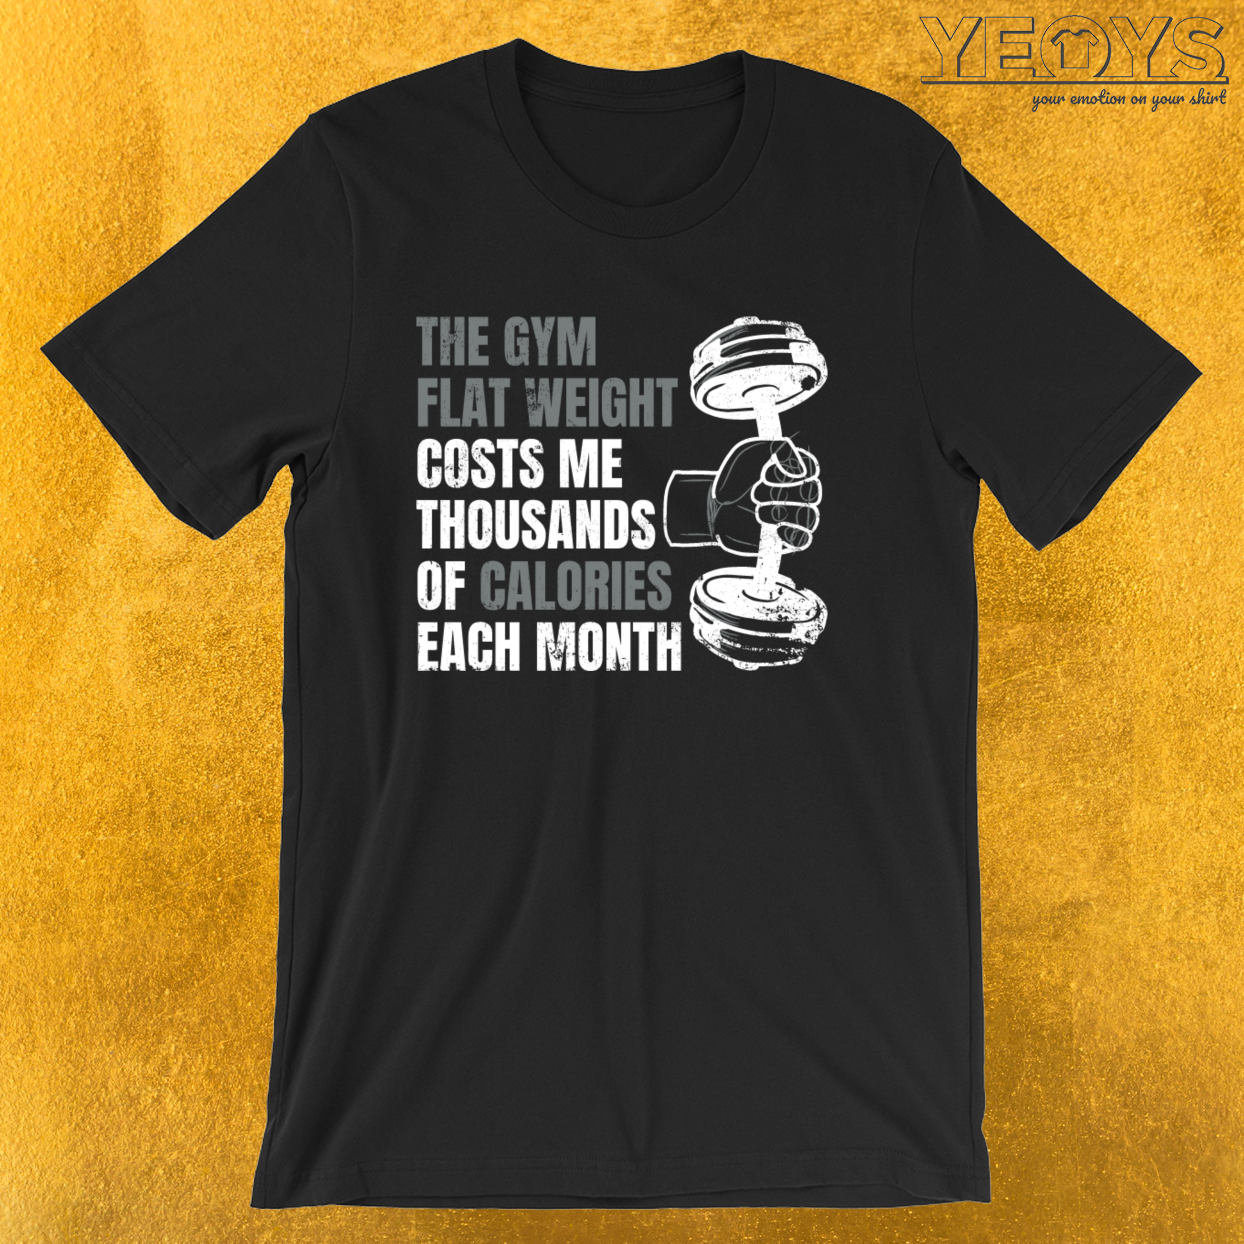 The Gym Flat Weight Costs Me Calories – Weightlifting Tee